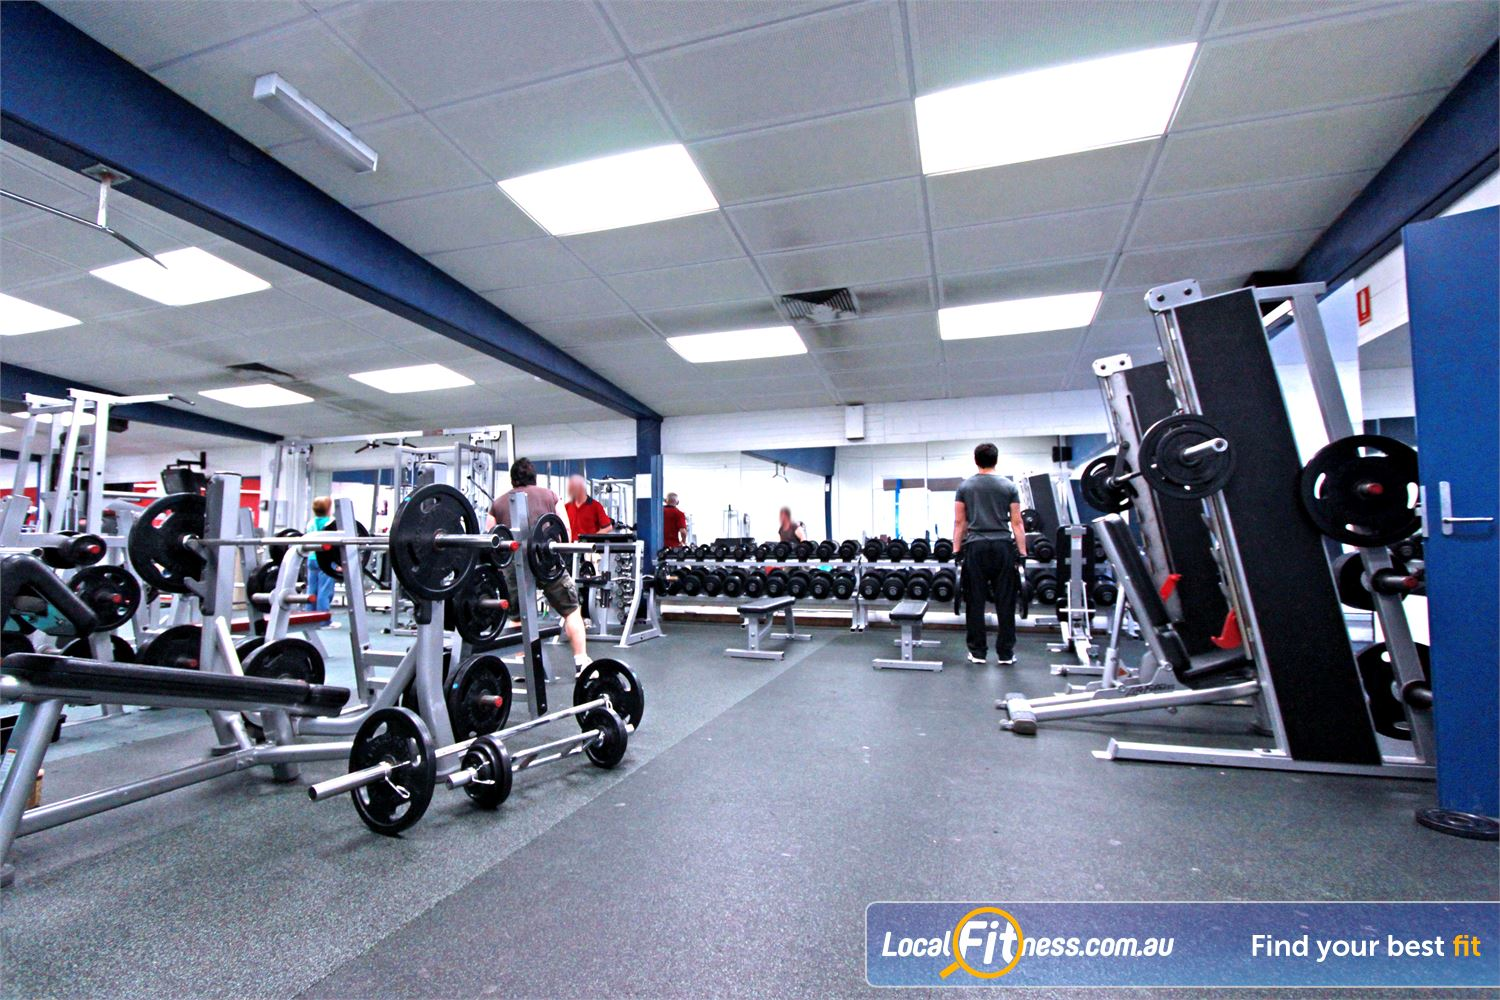 East Keilor Leisure Centre Keilor East Our East Keilor gym provides health and fitness options for the whole community.